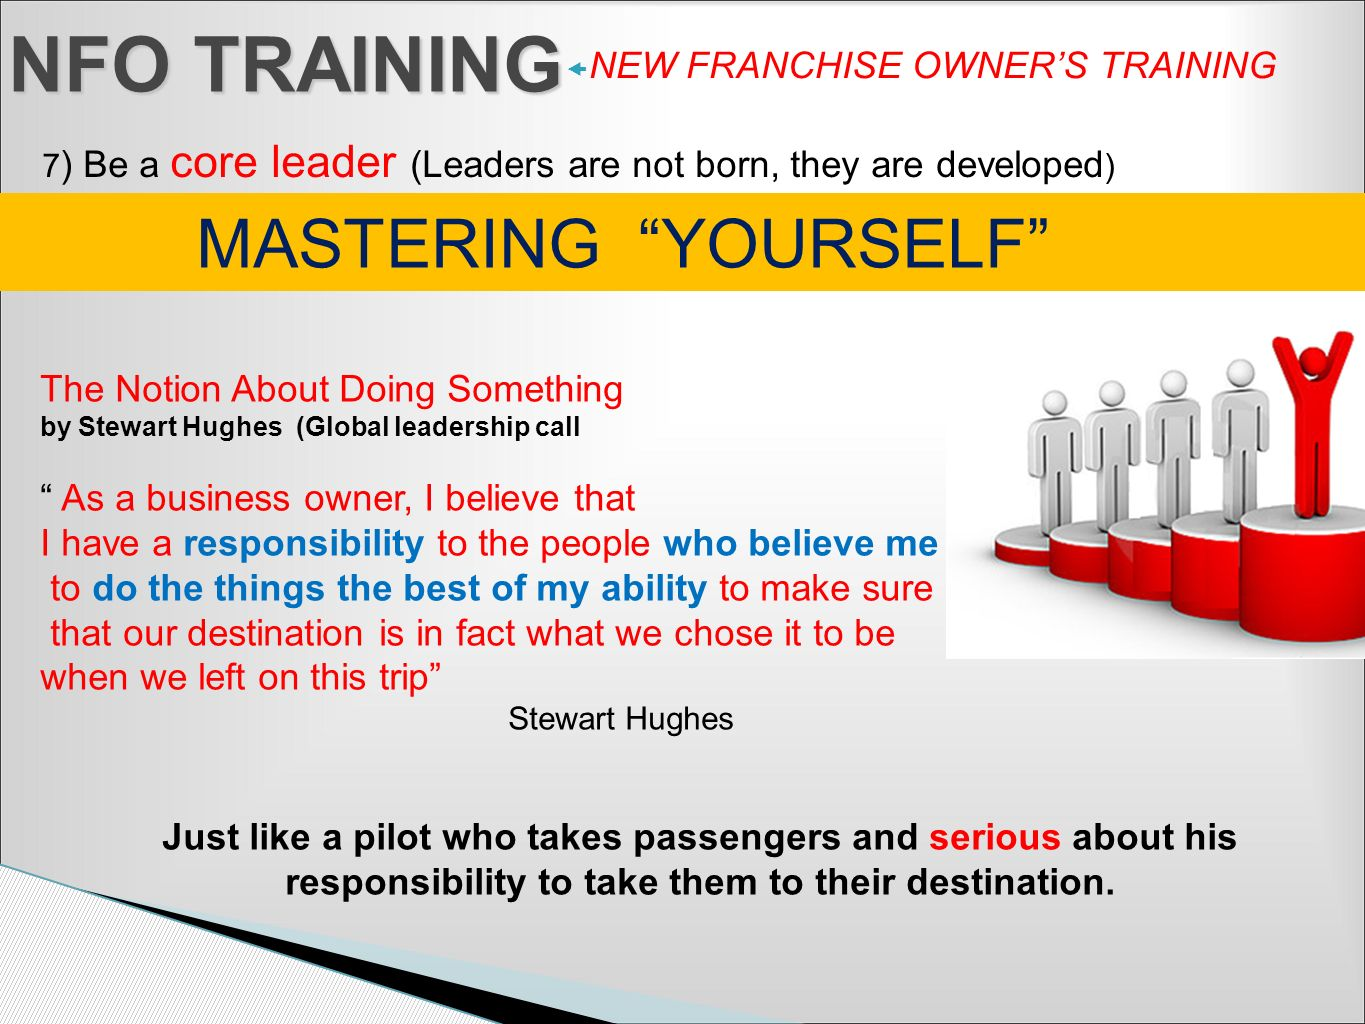 NFO TRAINING MASTERING YOURSELF NEW FRANCHISE OWNER'S TRAINING